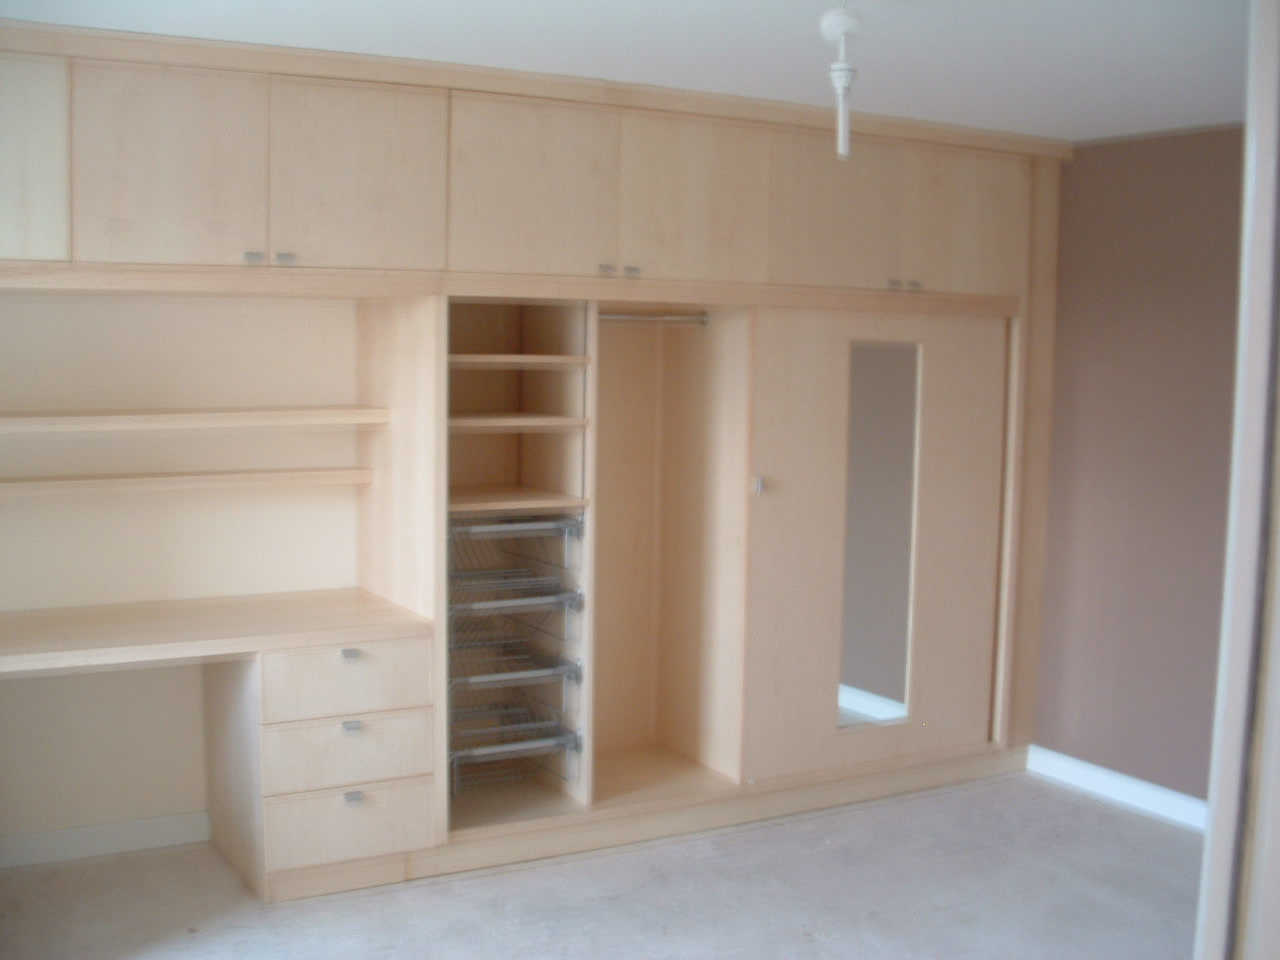 Very Best Bedroom Furniture with Desk 1280 x 960 · 336 kB · jpeg